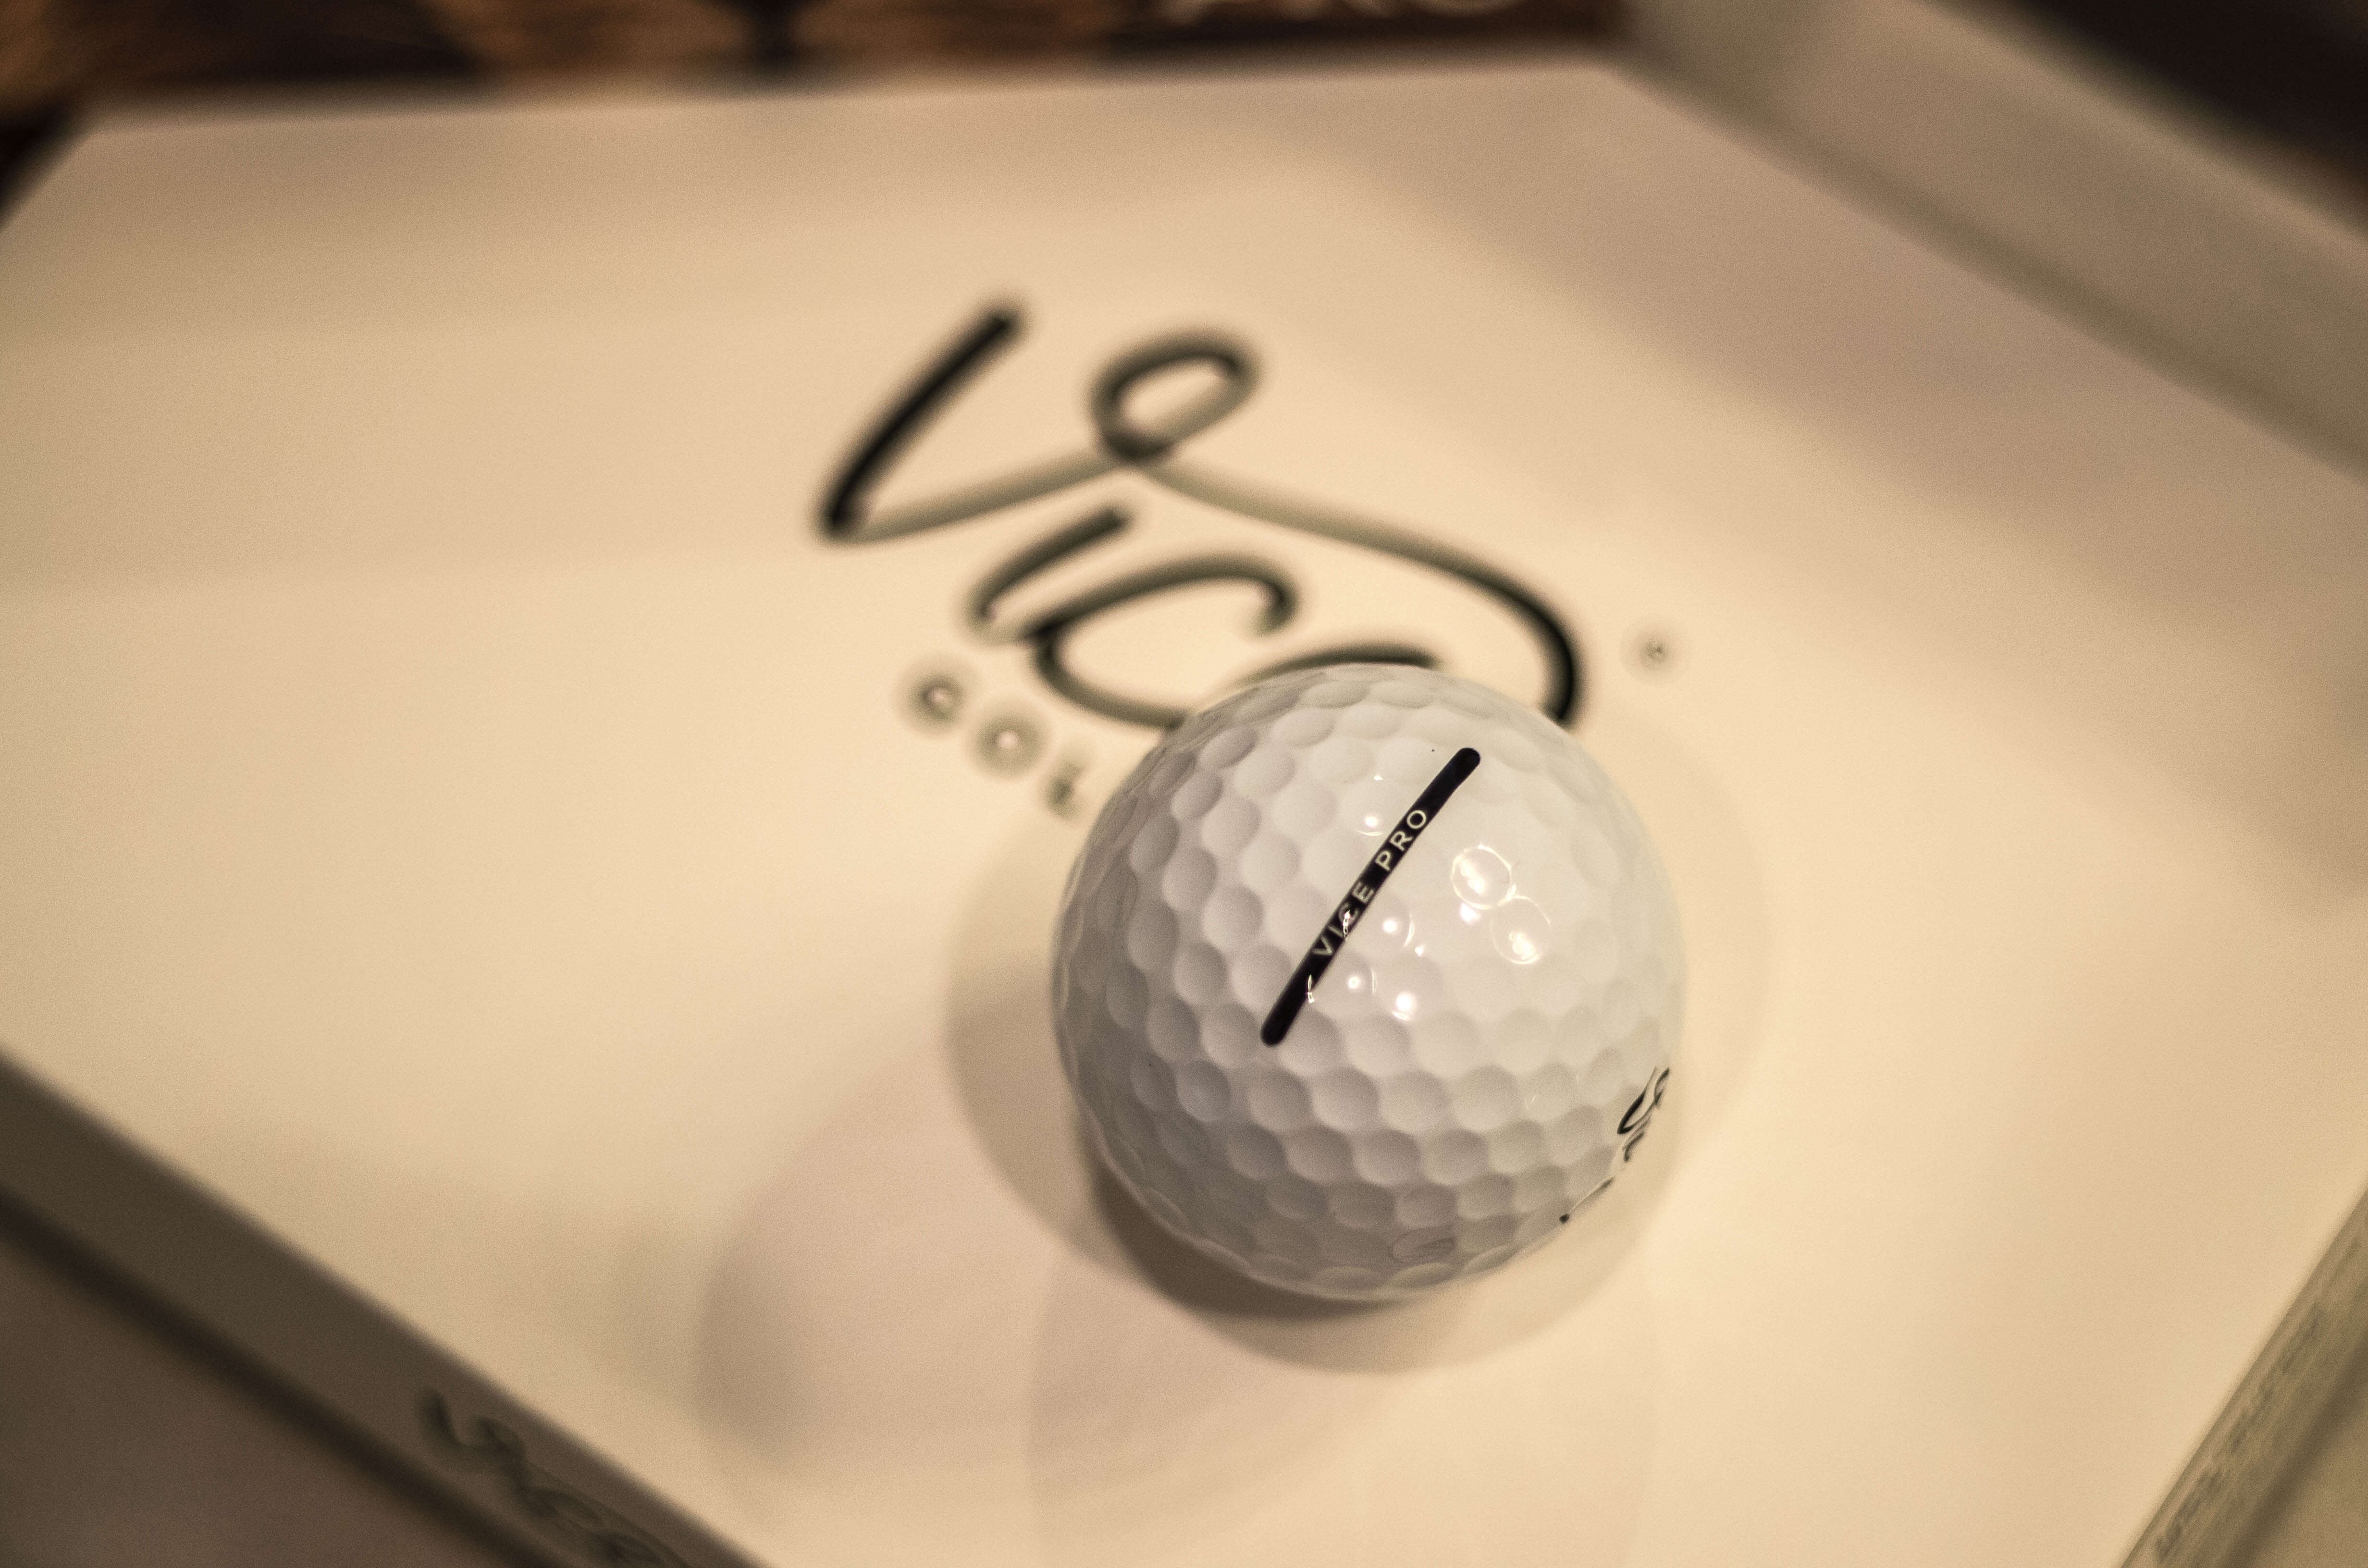 2016-08-09-Vice Golf Balls - Unboxing-301400